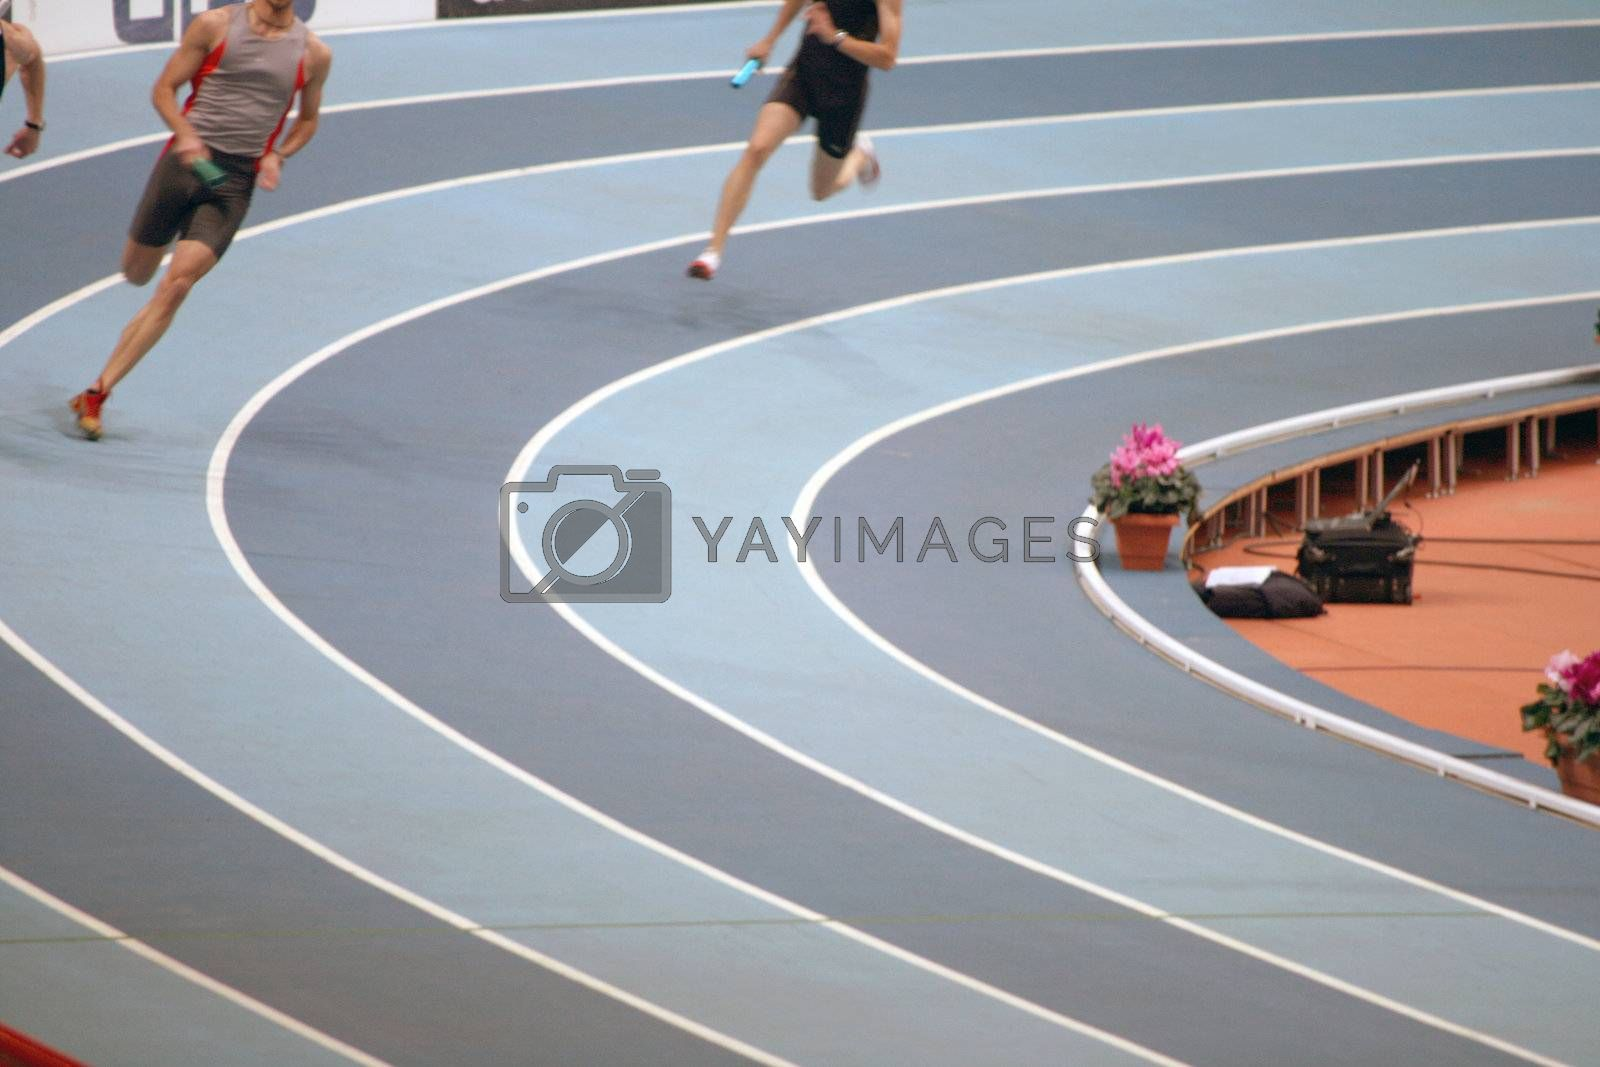 men indoors relay race sports and athletics concepts